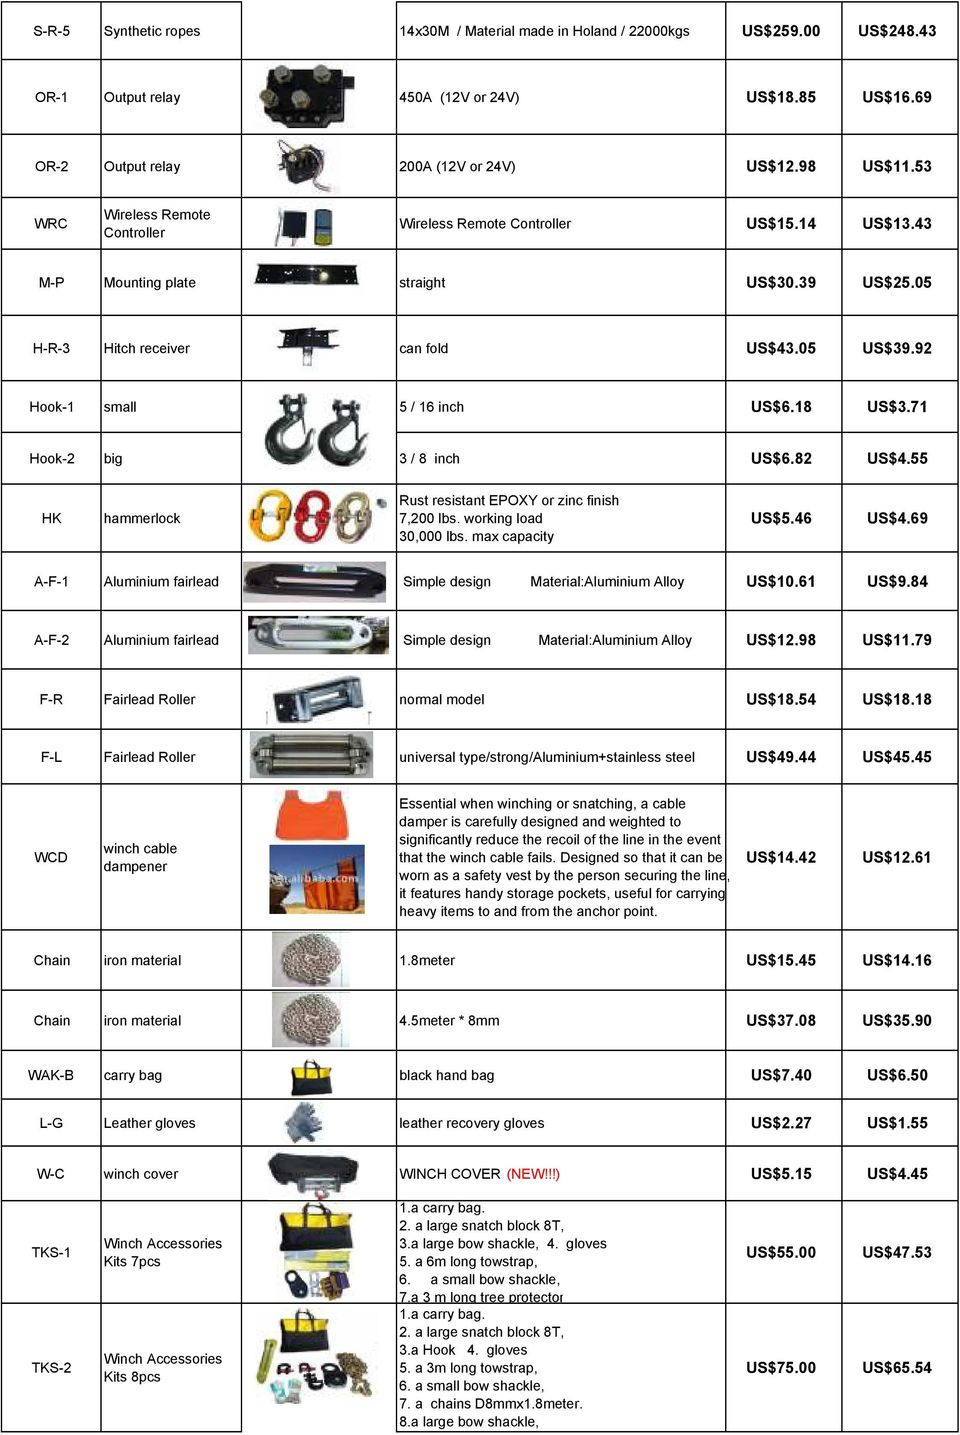 Picture Specification Pdf Generator And Regulator Circuit For 1945 46 Chevrolet Trucks 1 2 Ton 18 Us371 Hook Big 3 8 Inch Us682 Us4 6 Bs9